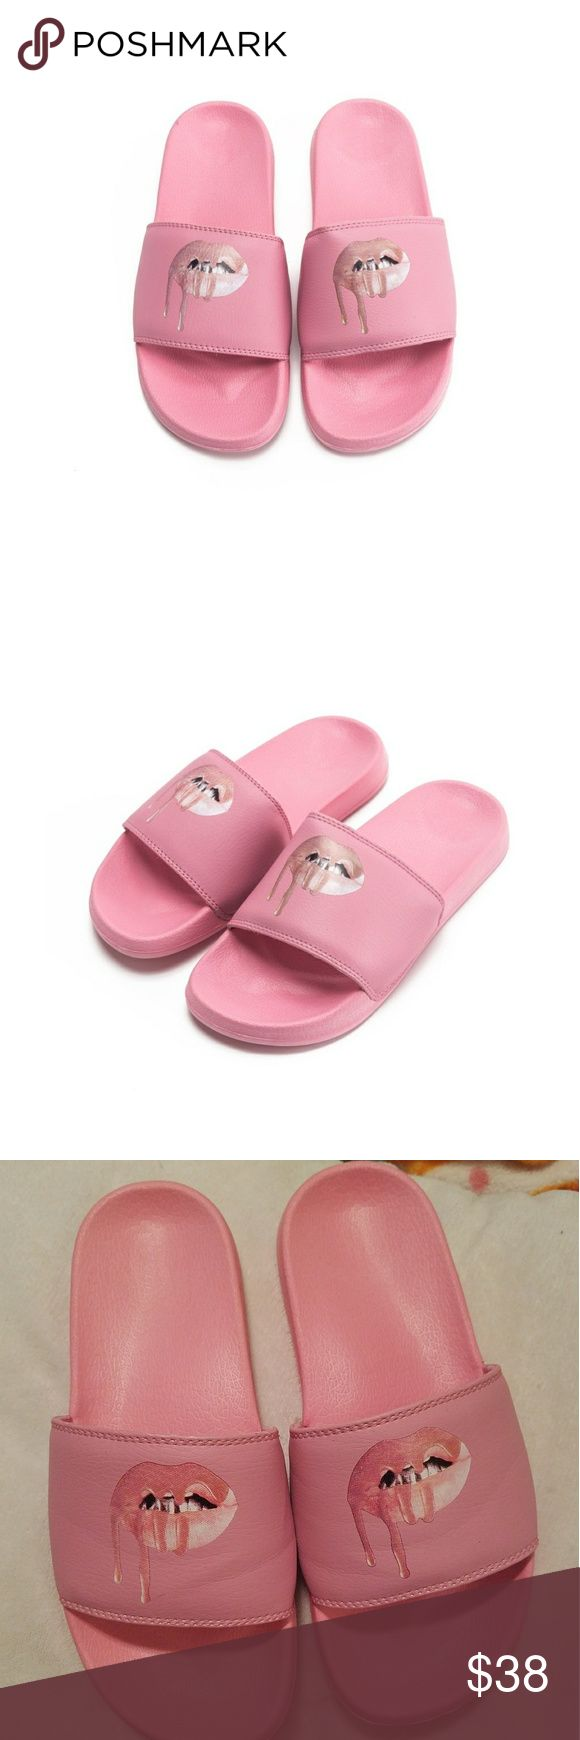 Kylie Jenner Slides Kylie Jenner slides. Never worn. 100% Authentic purchased from her website. Size 8 but I think the sizing runs a little small.  No trades. Offers are welcomed!! Kylie Jenner Shoes Sandals